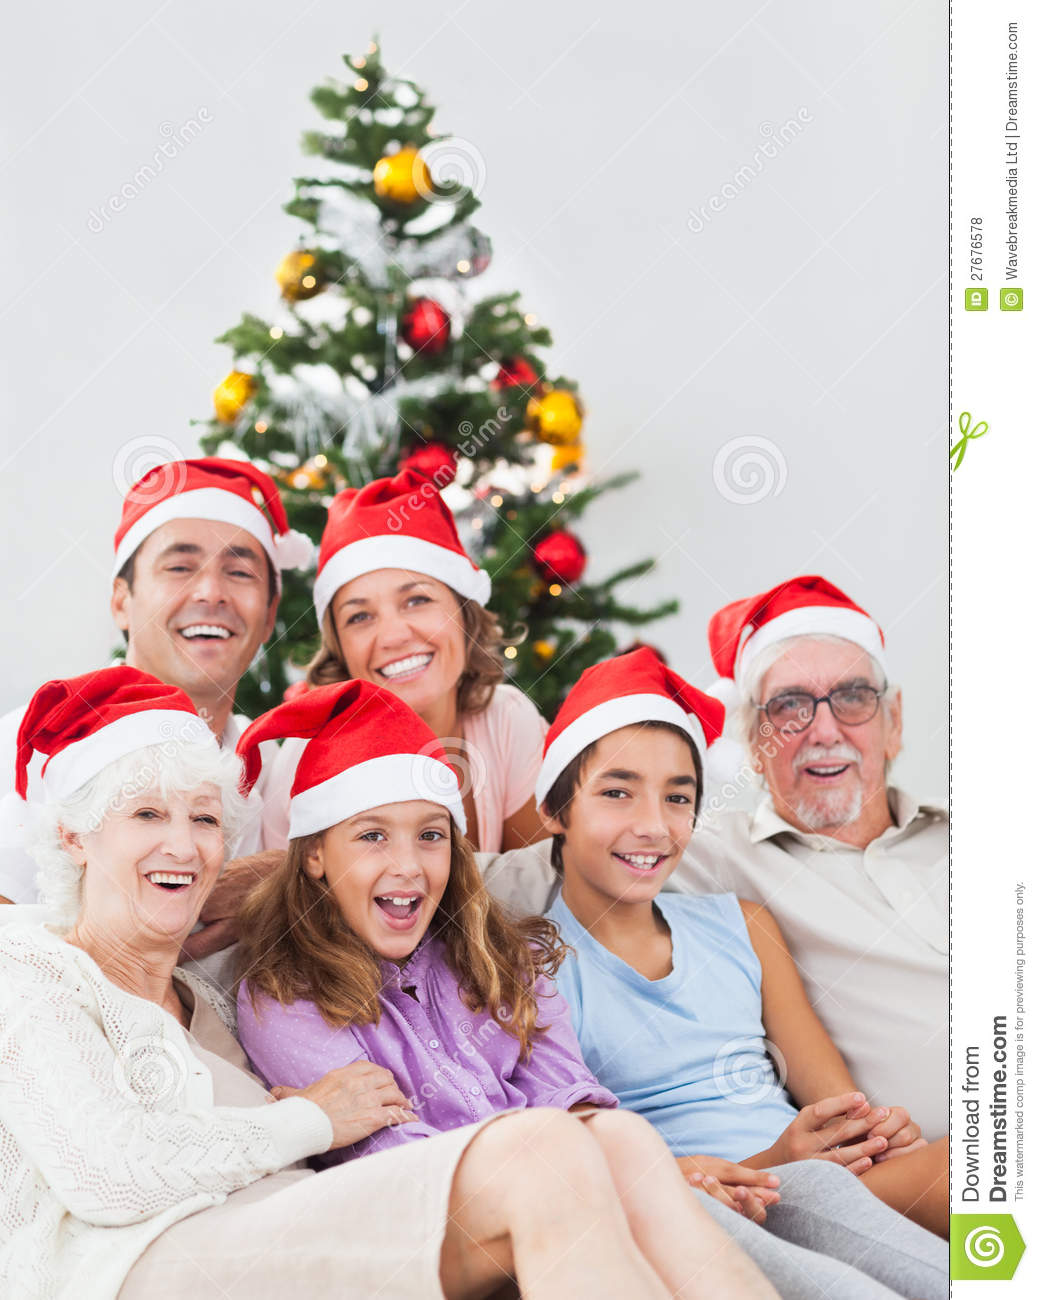 Happy Families at Christmas